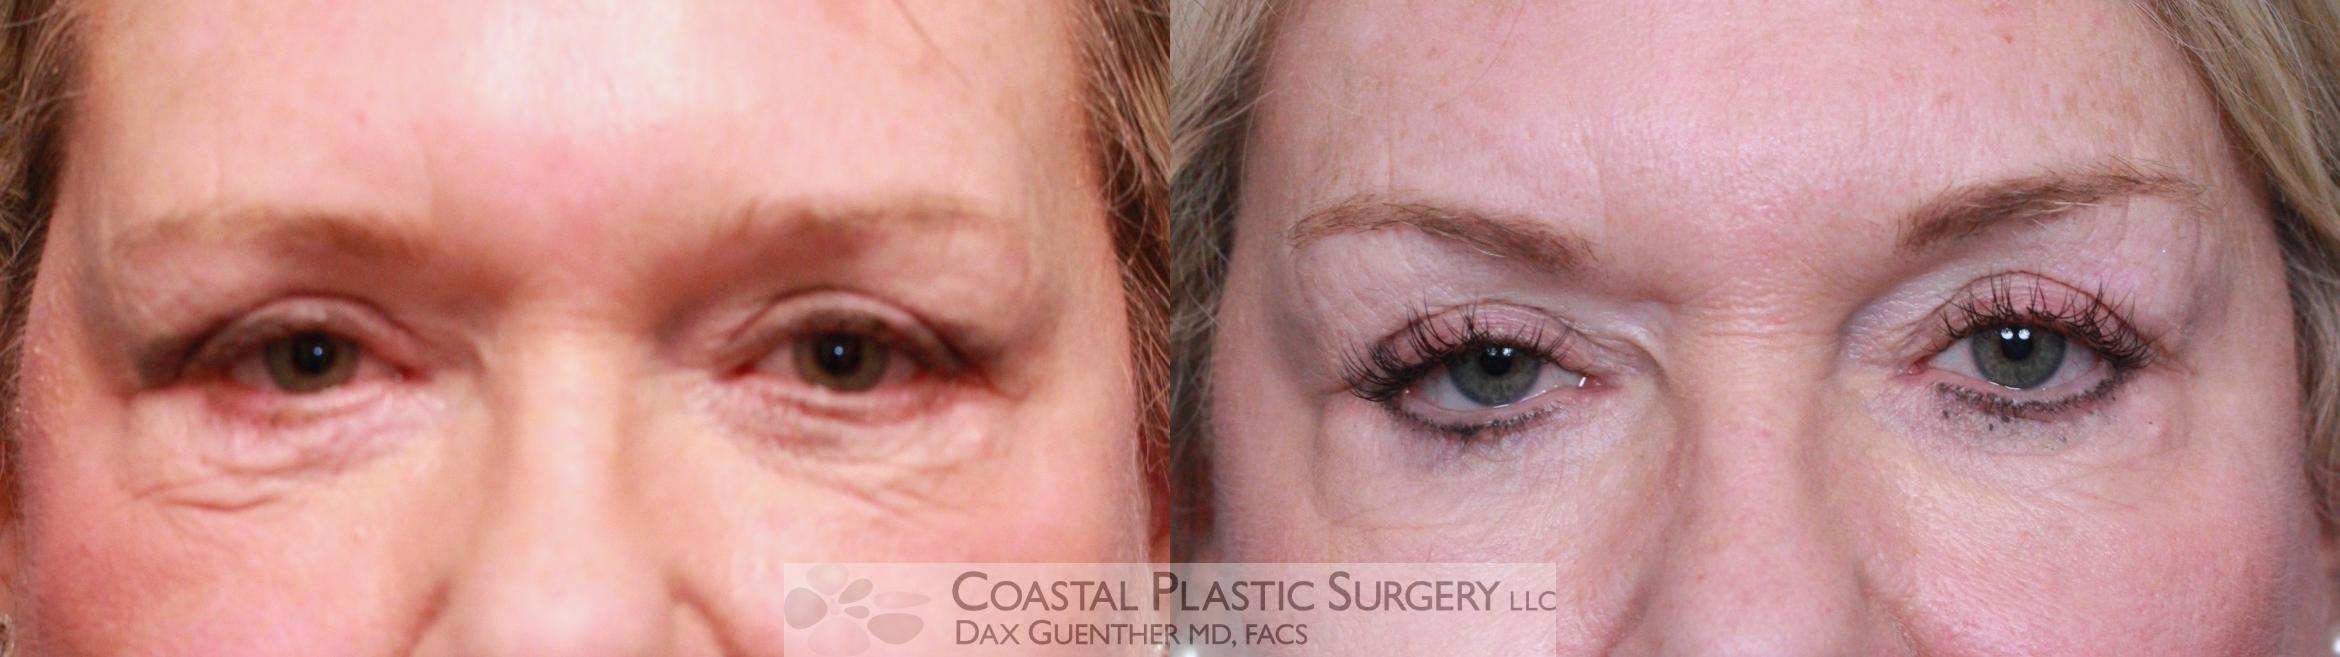 Botox/Dysport Before & After Photo | Hingham, MA | Dax Guenther, MD: Coastal Plastic Surgery